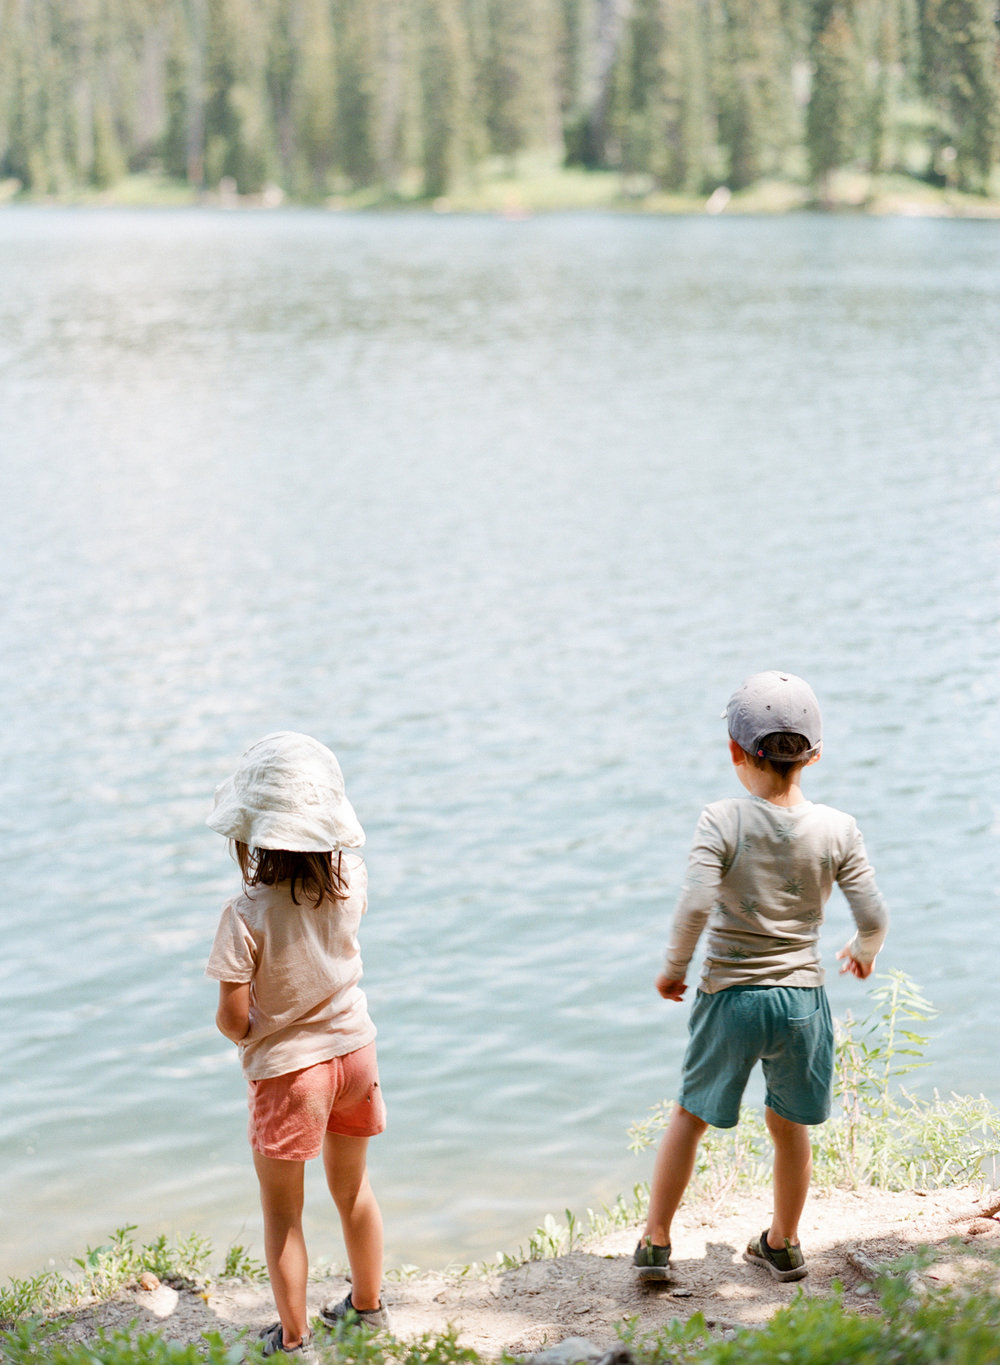 Our kids looking out upon a mountain lake after a night out camping. // Pictured wearing merino shorts, tee, and long john top.